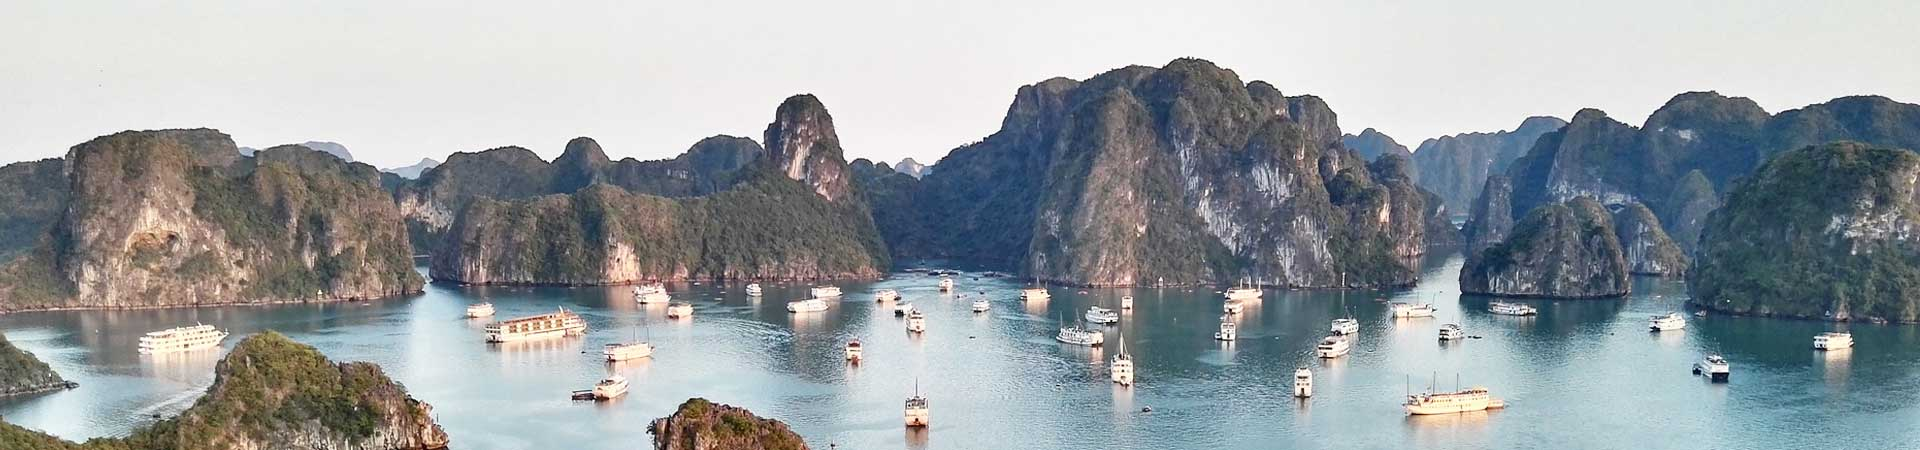 4D3N Hanoi & Halong Bay Cruise